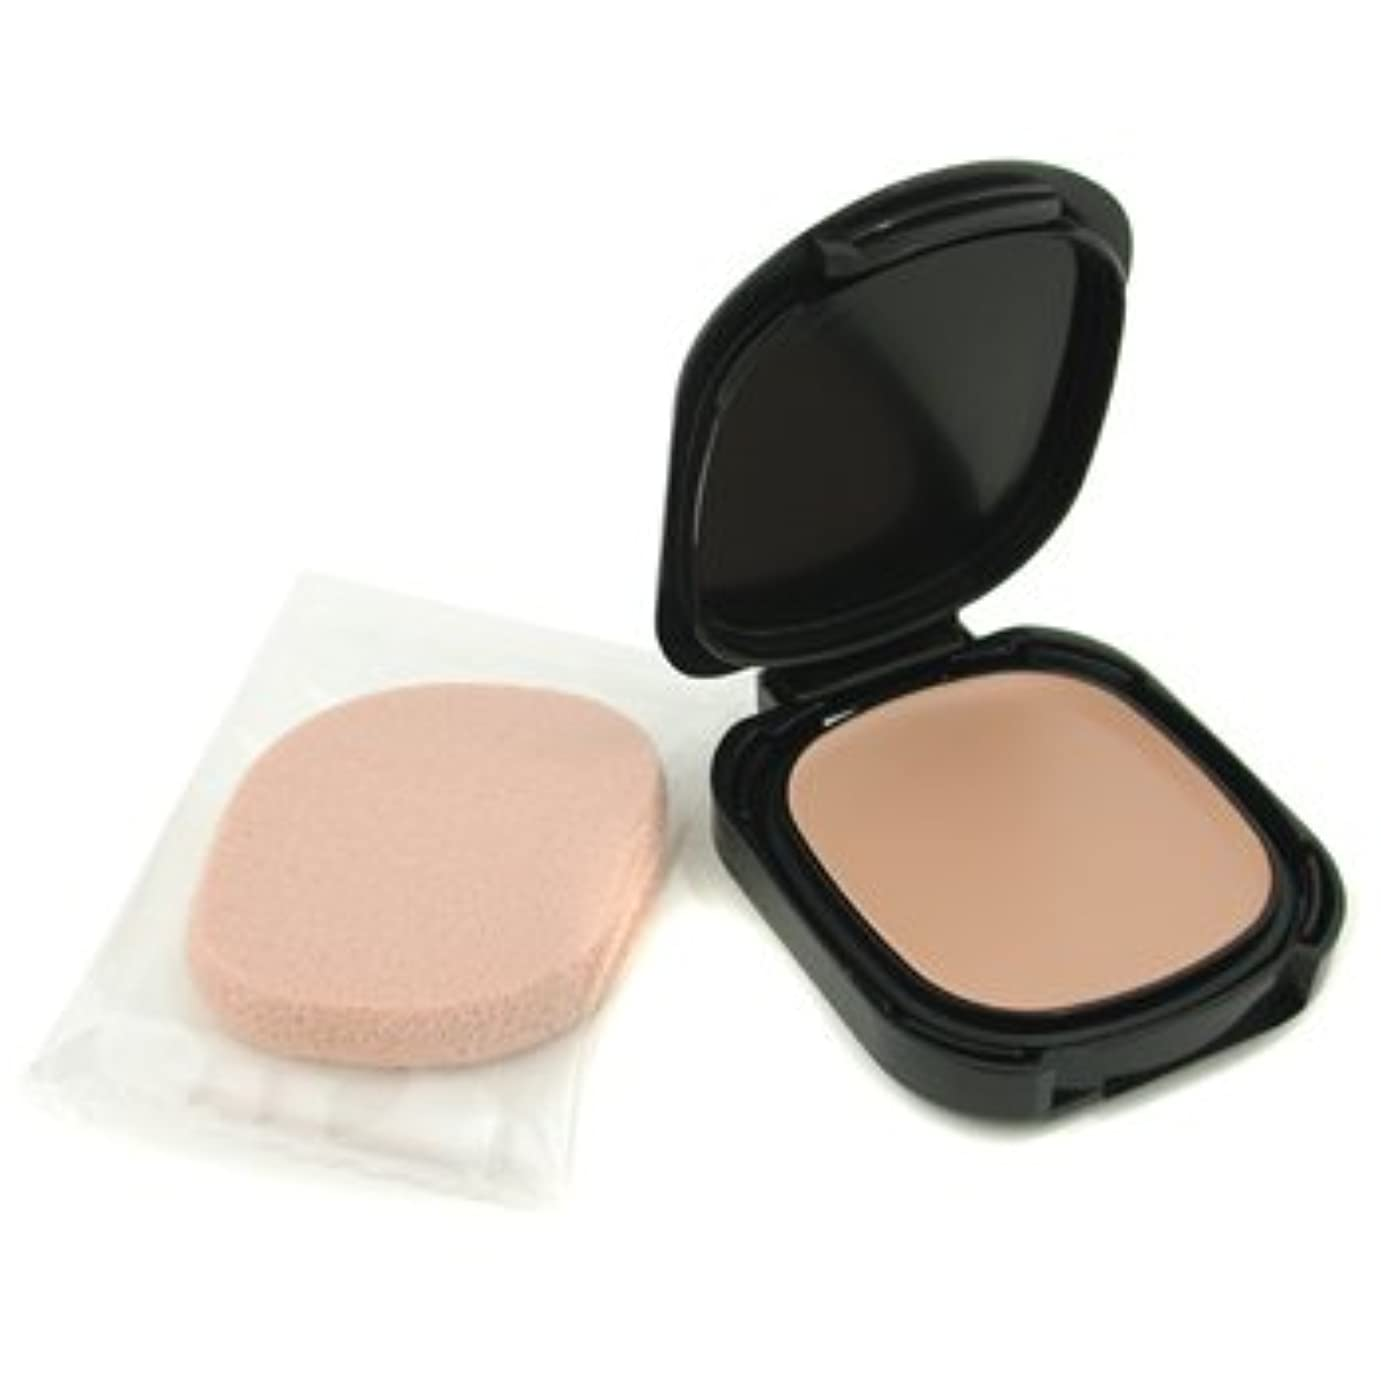 グリースウガンダ日帰り旅行にShiseido Advanced Hydro Liquid Compact Foundation SPF10 Refill - I20 Natural Light Ivory - 12g/0.42oz by Shiseido